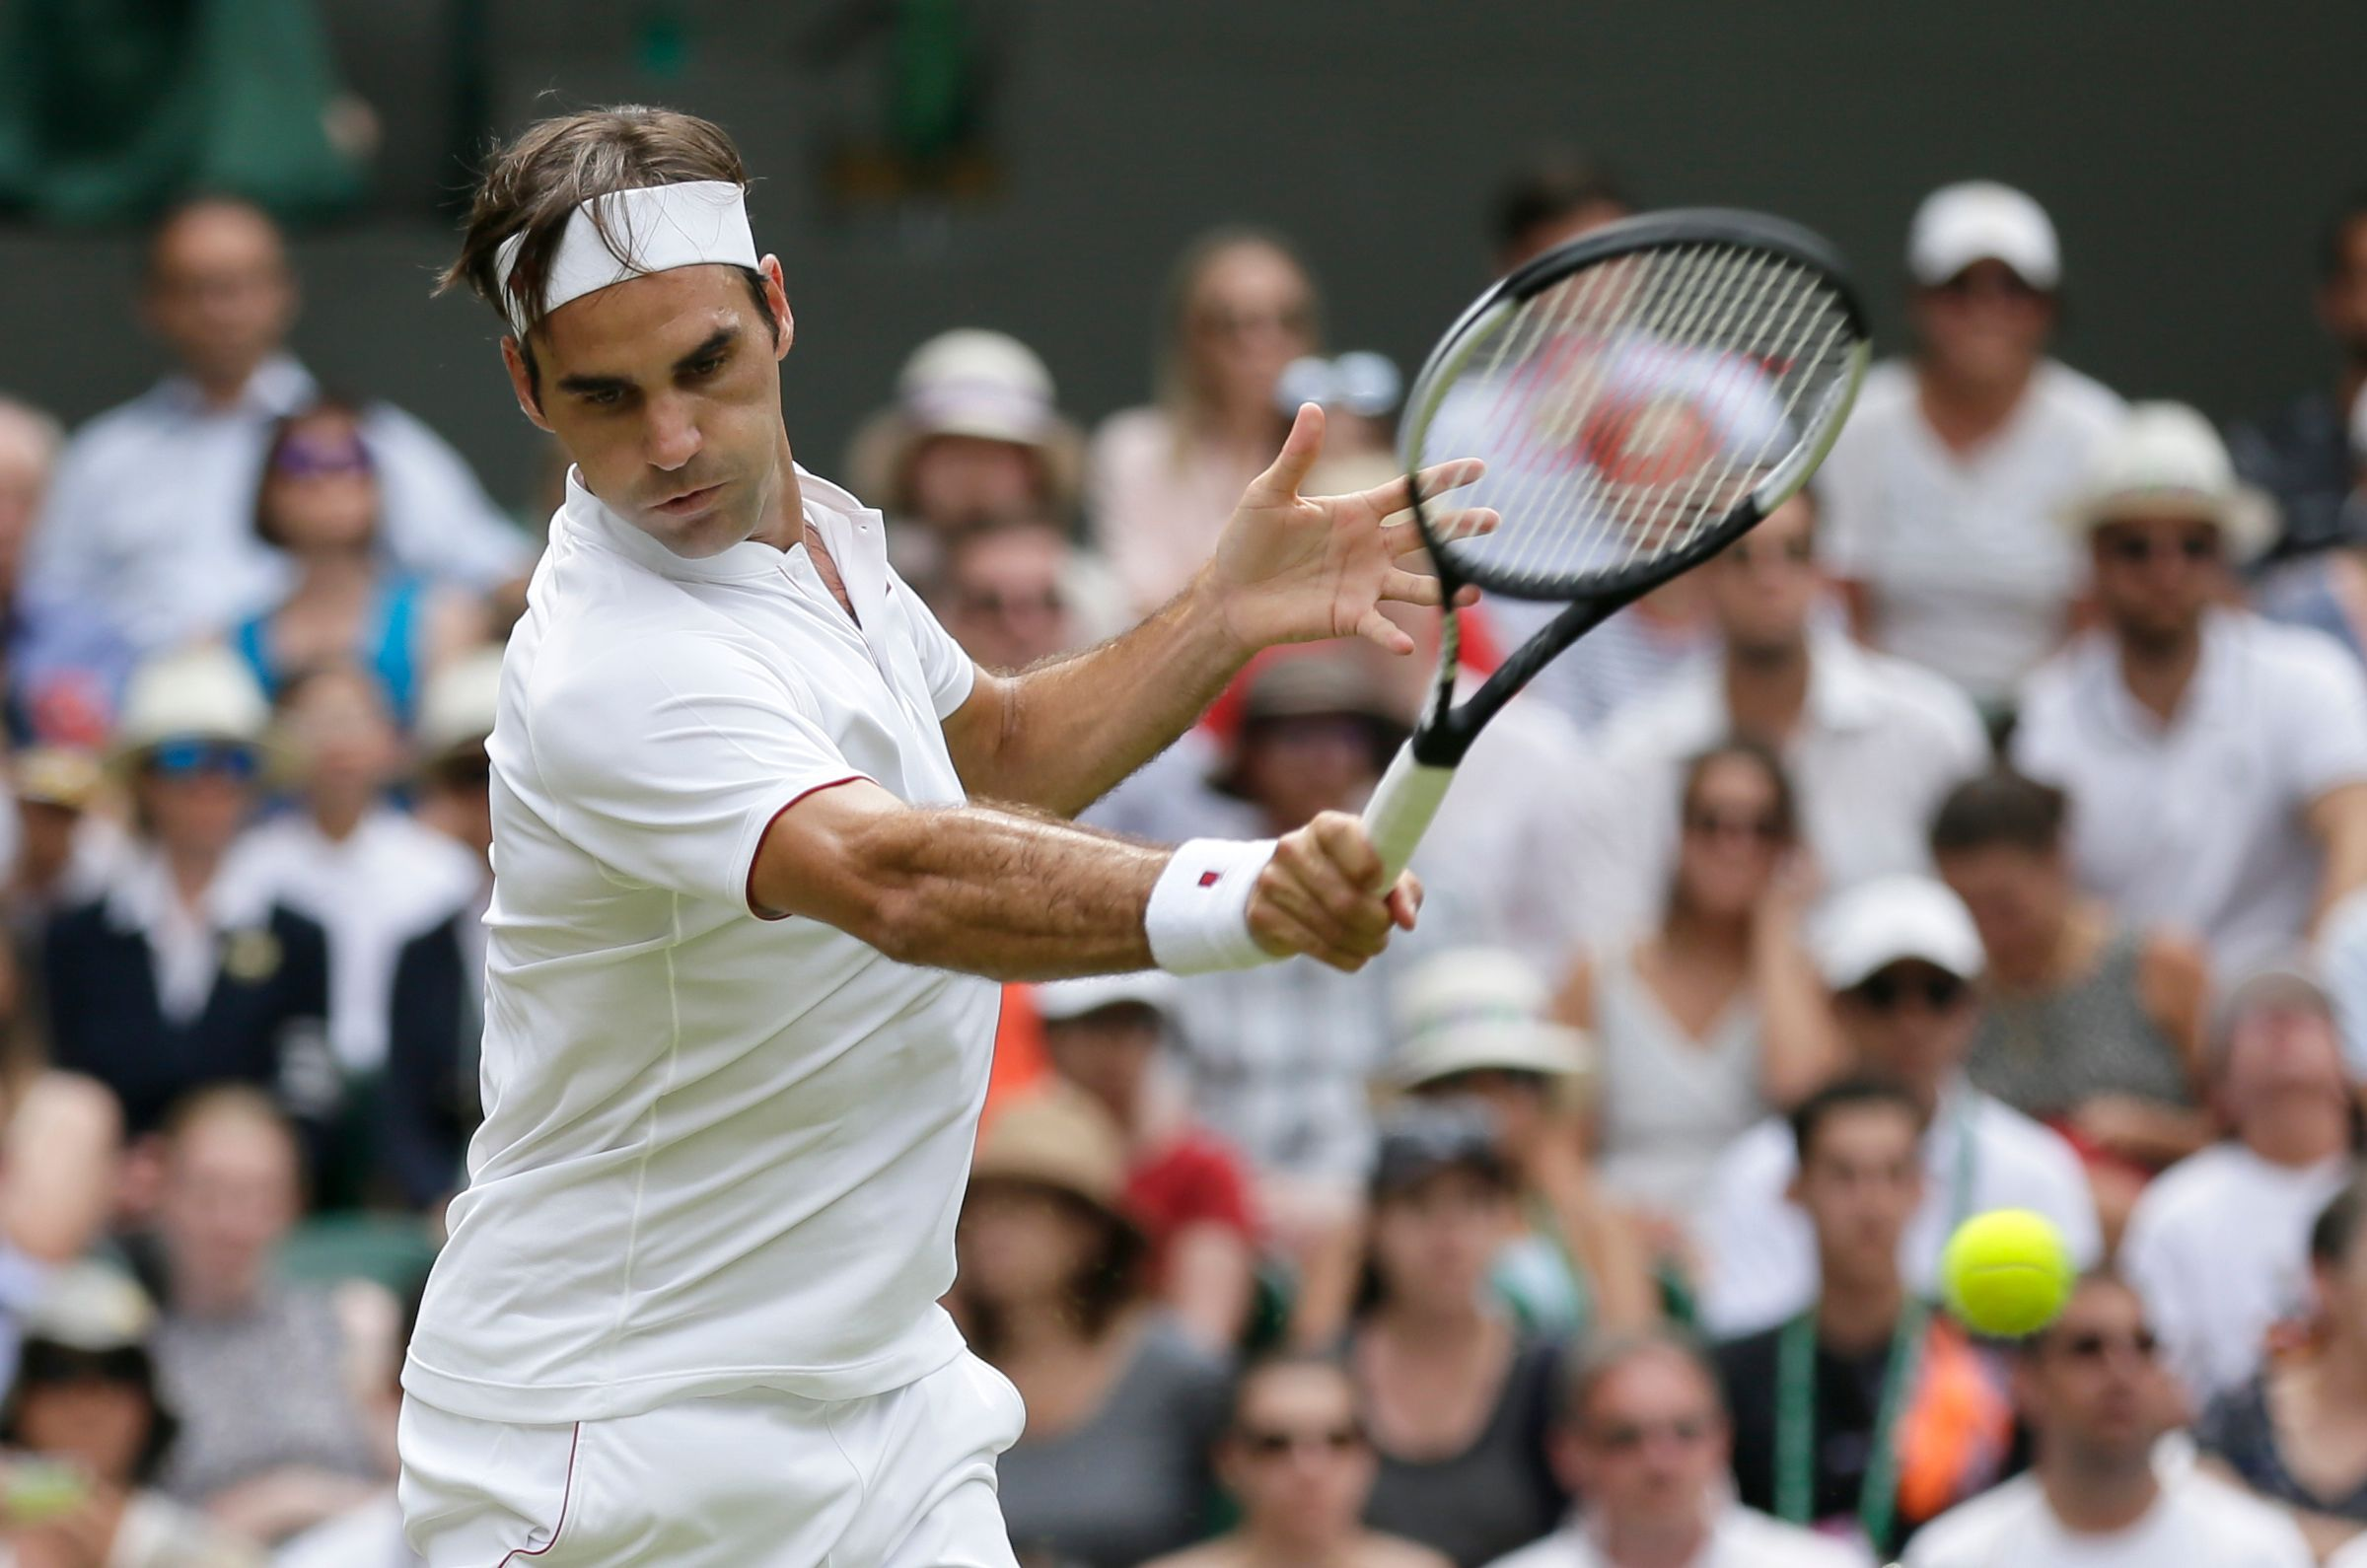 The Latest: Federer picks up where he left off at Wimbledon